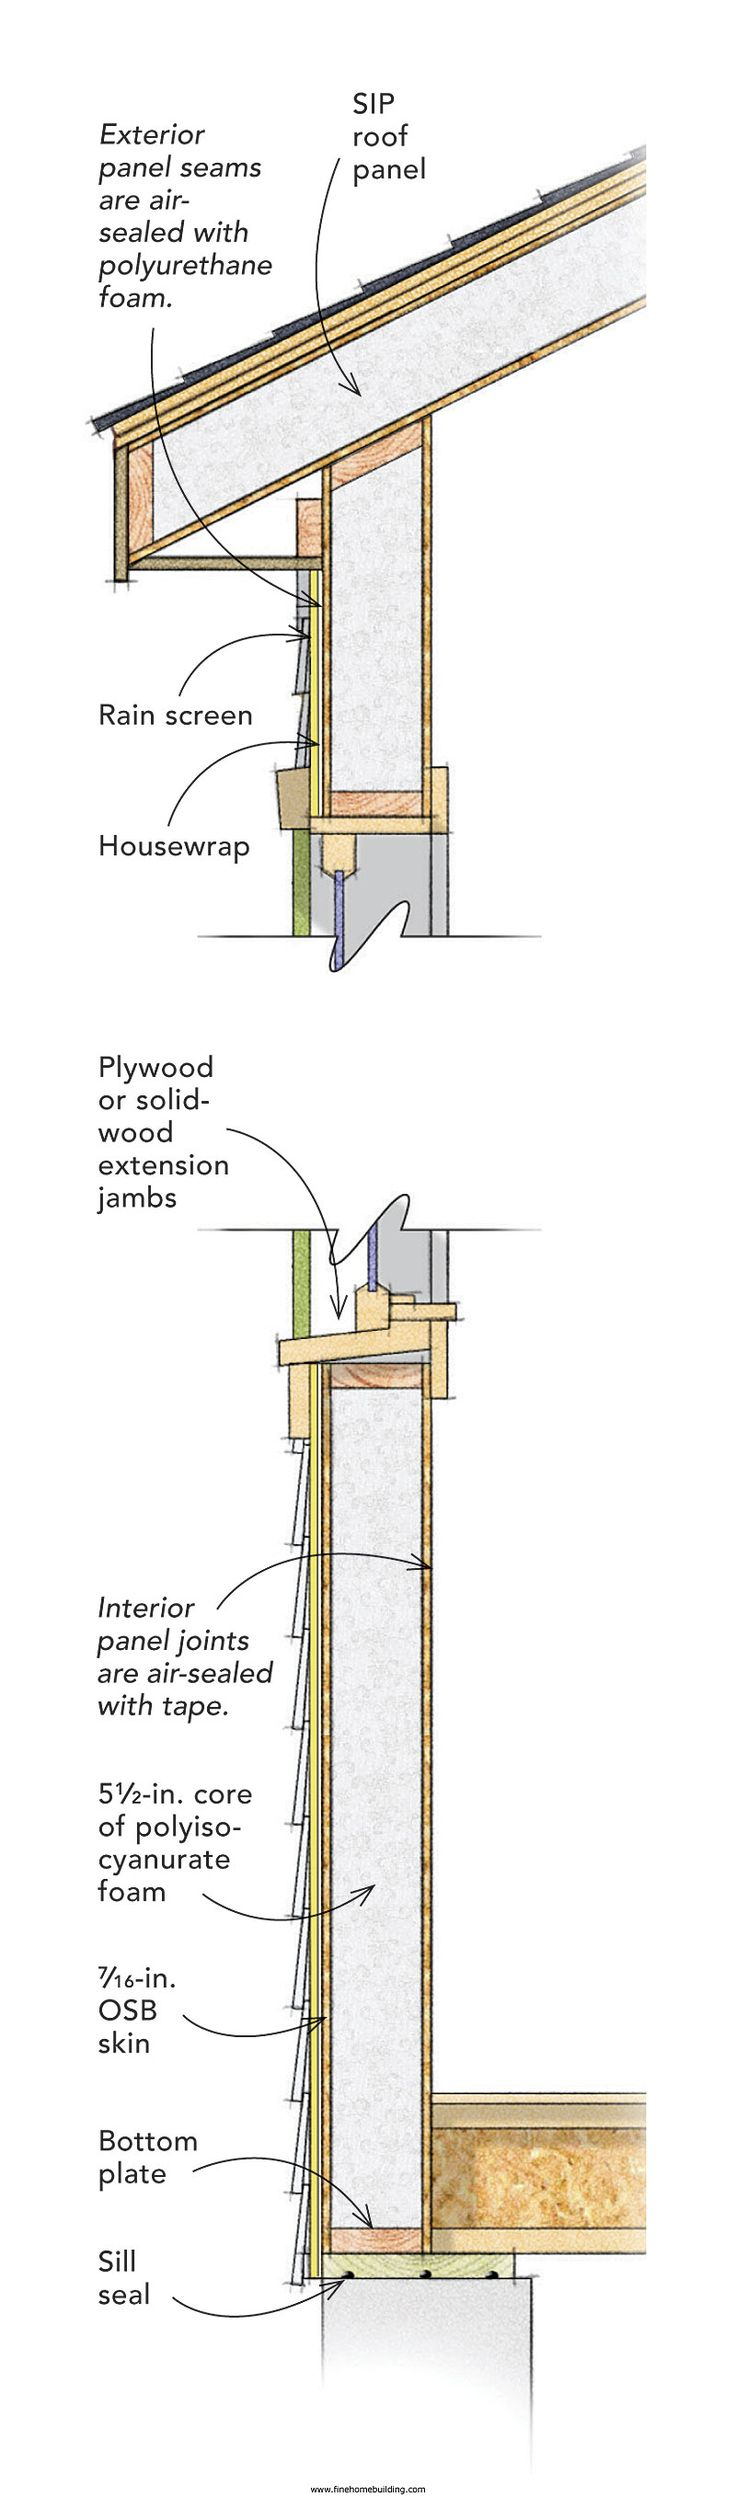 Sip walls details pinterest walls construction and for Sip building plans